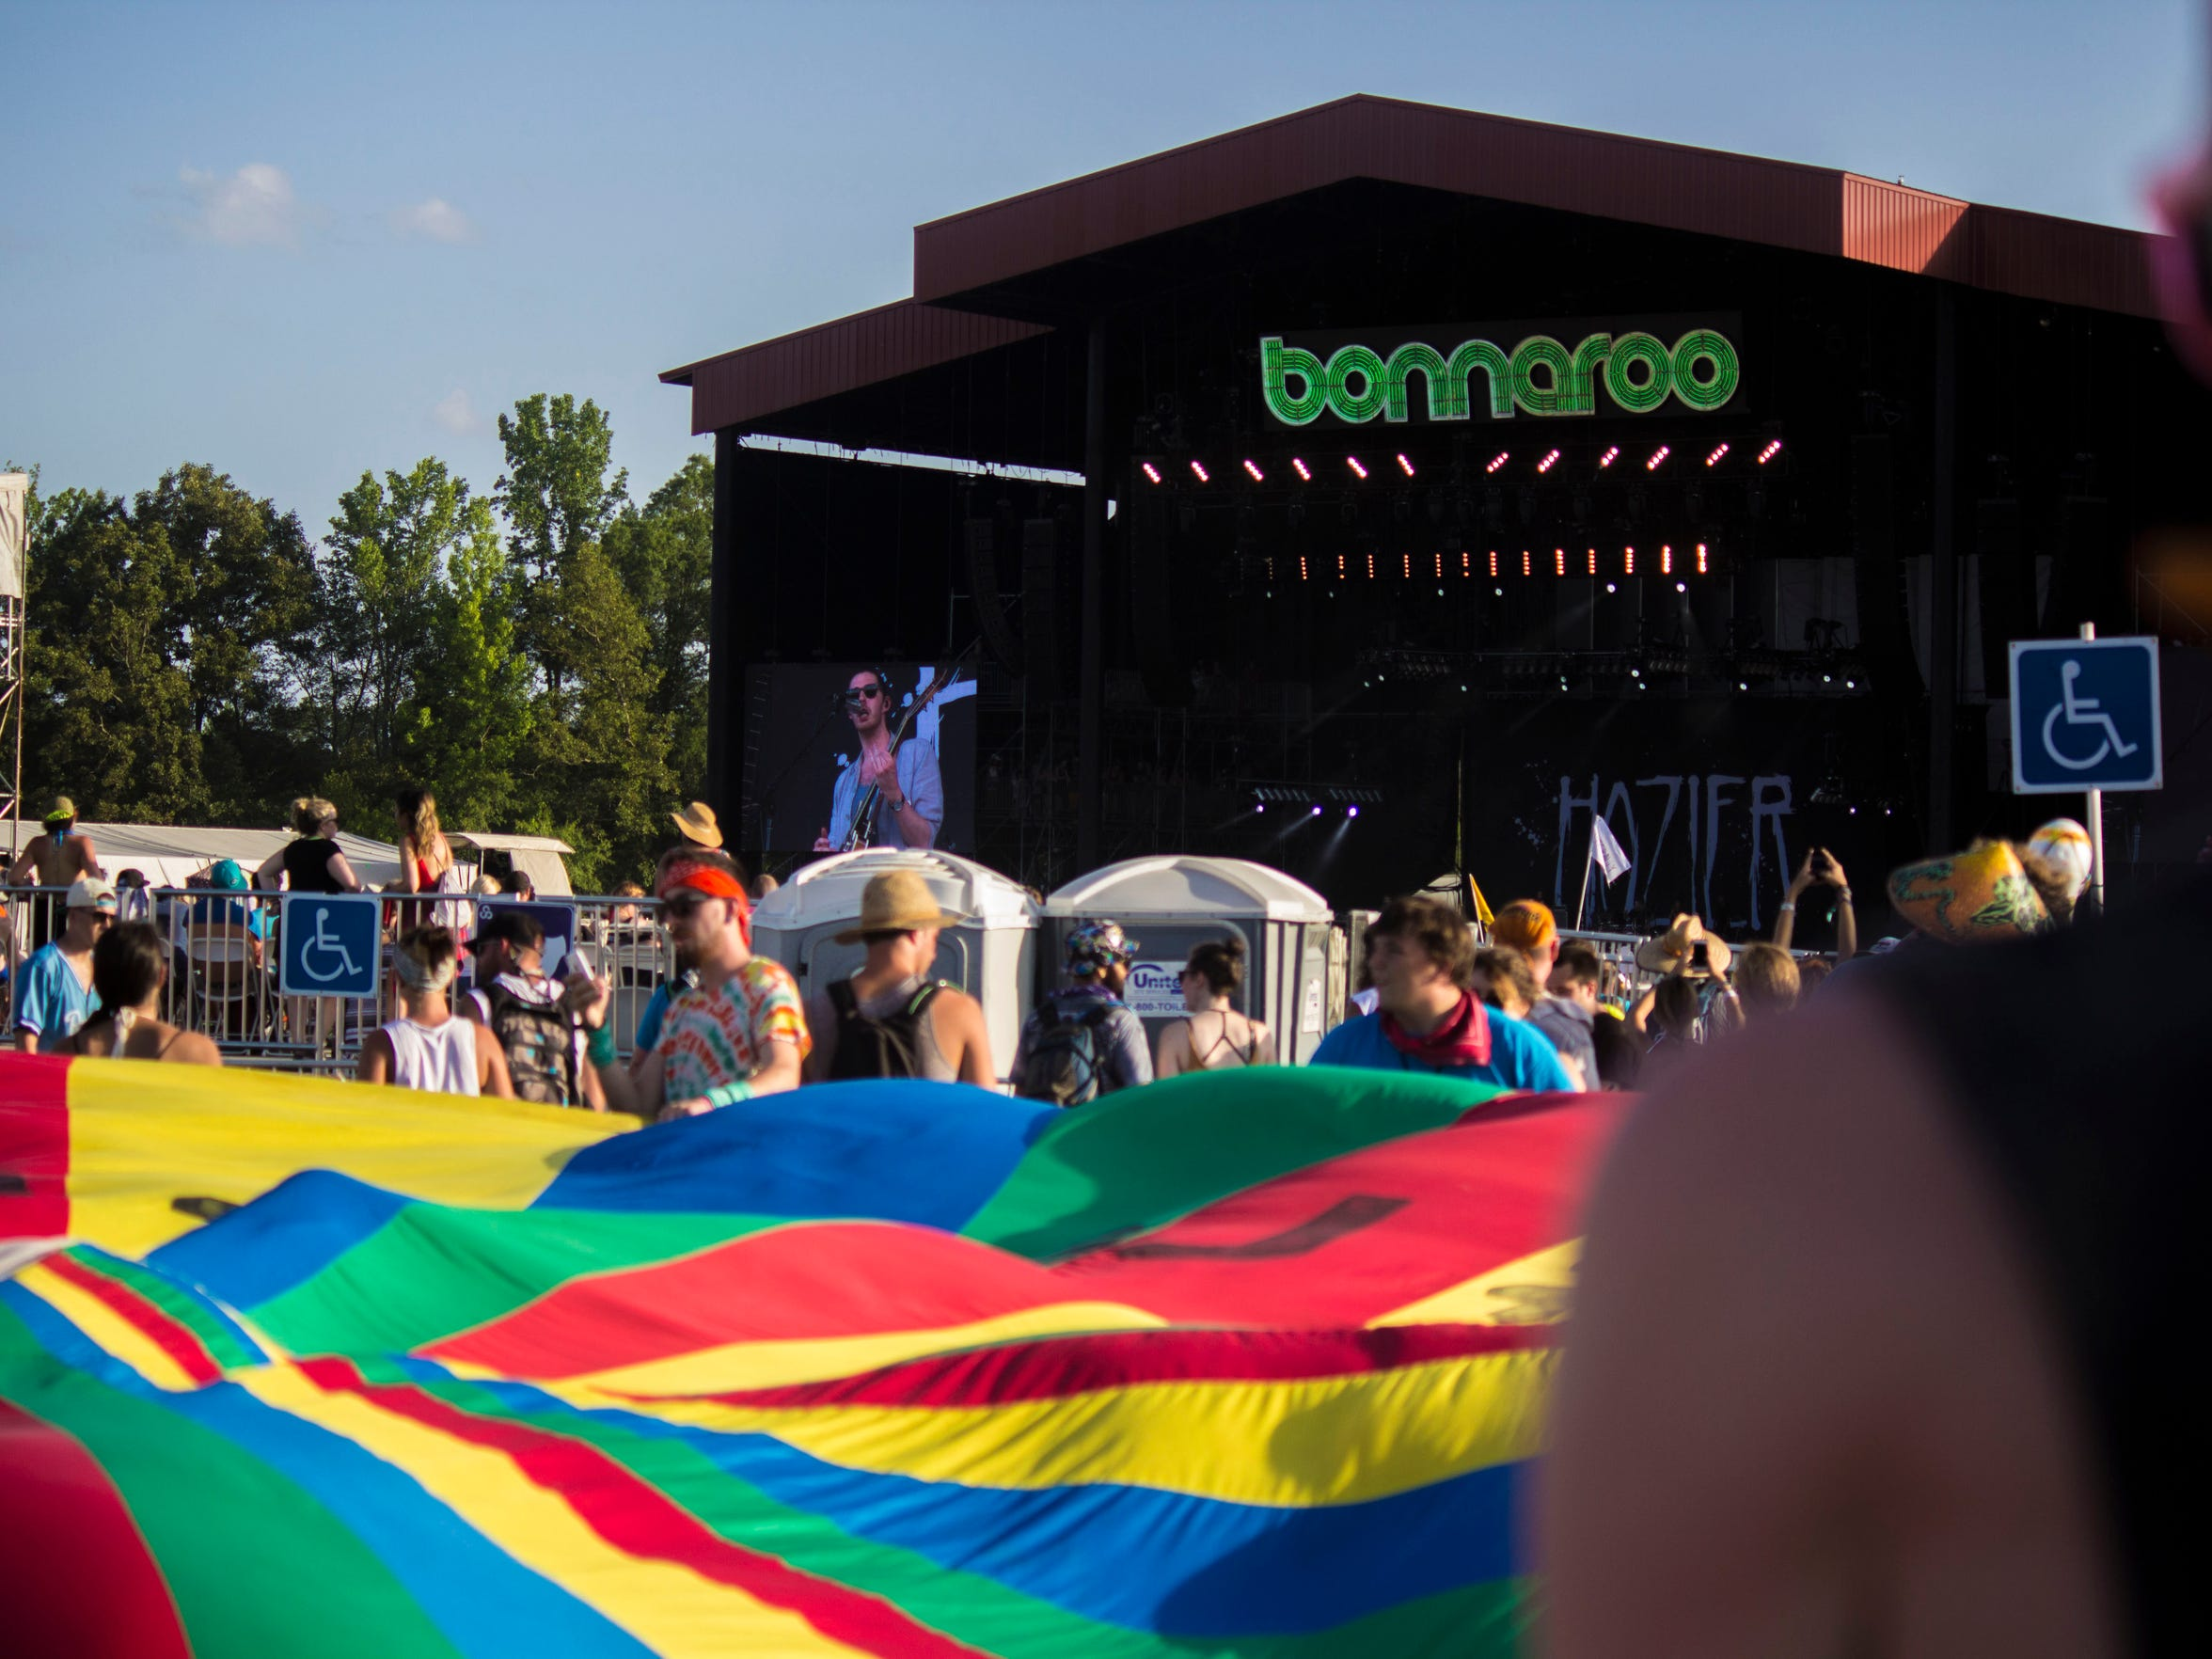 Manchester, Tenn. plays host to the Bonnaroo Arts and Music Festival each June.